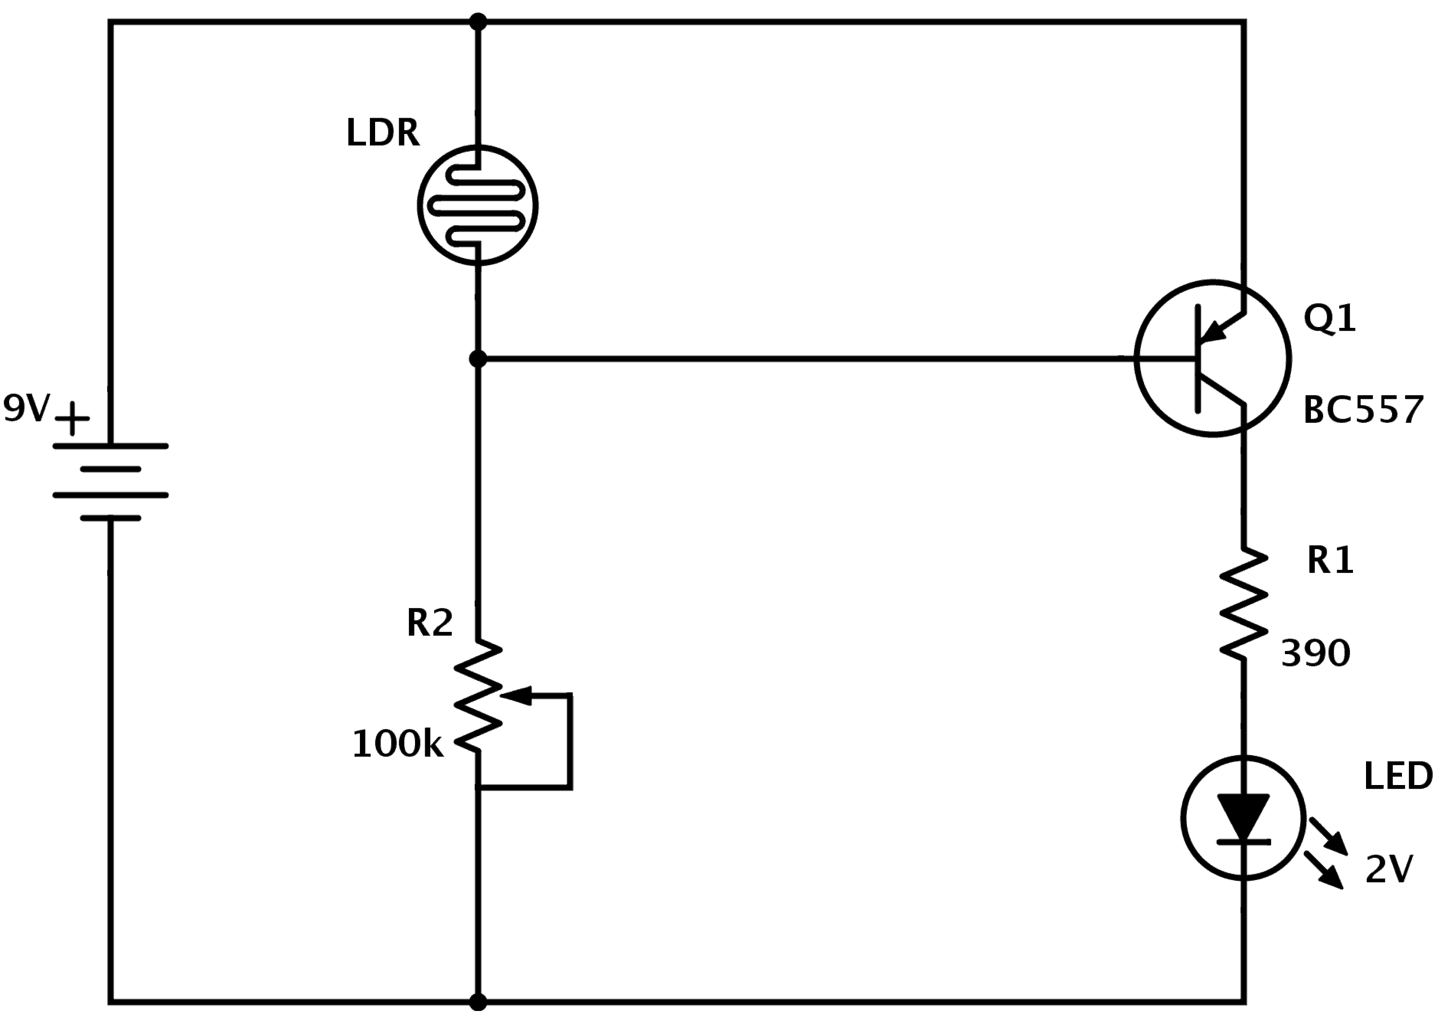 Ldr Circuit Diagram Build Electronic Circuits Breaker Panel Wiring As Well 3 Phase Electric Motor With Pnp Transistor Dark Detector